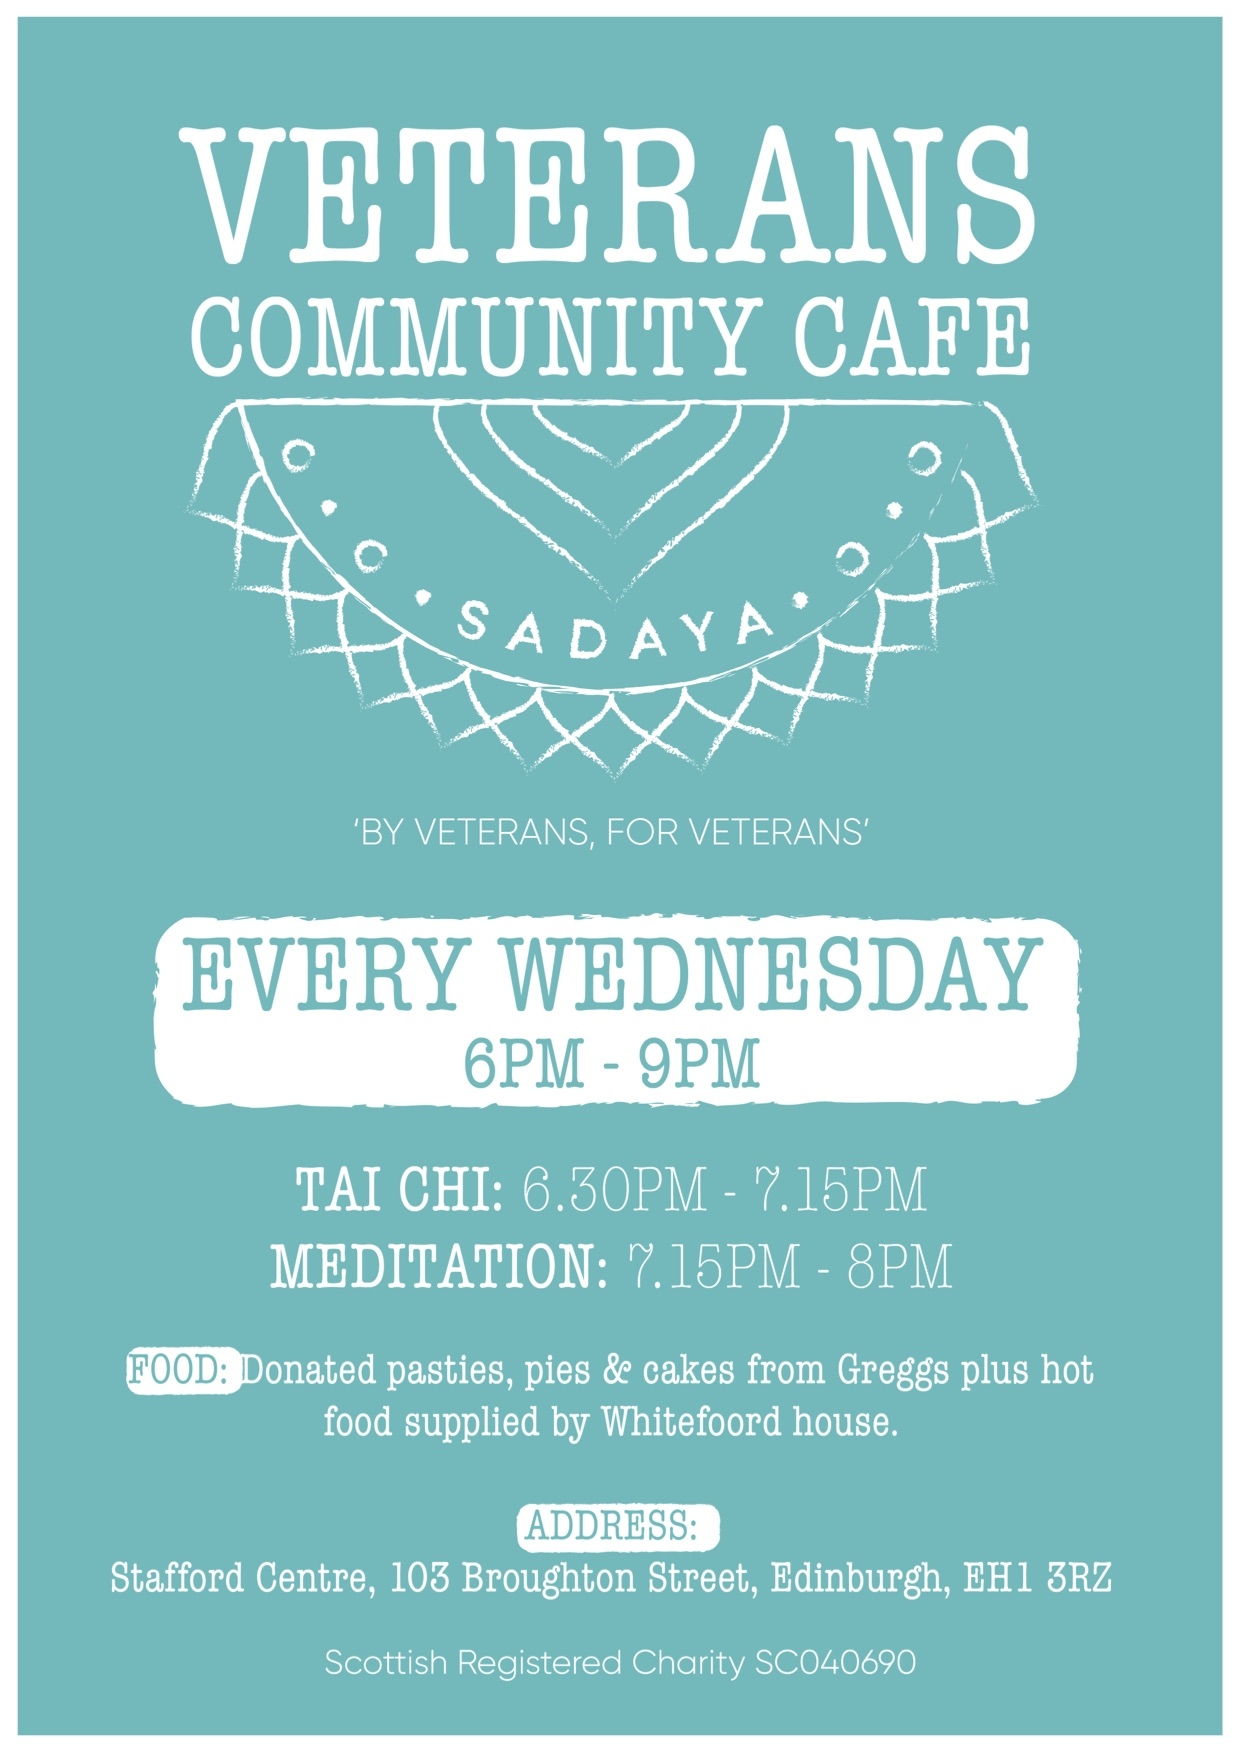 Veterans community cafe every Wednesday 6-9pm